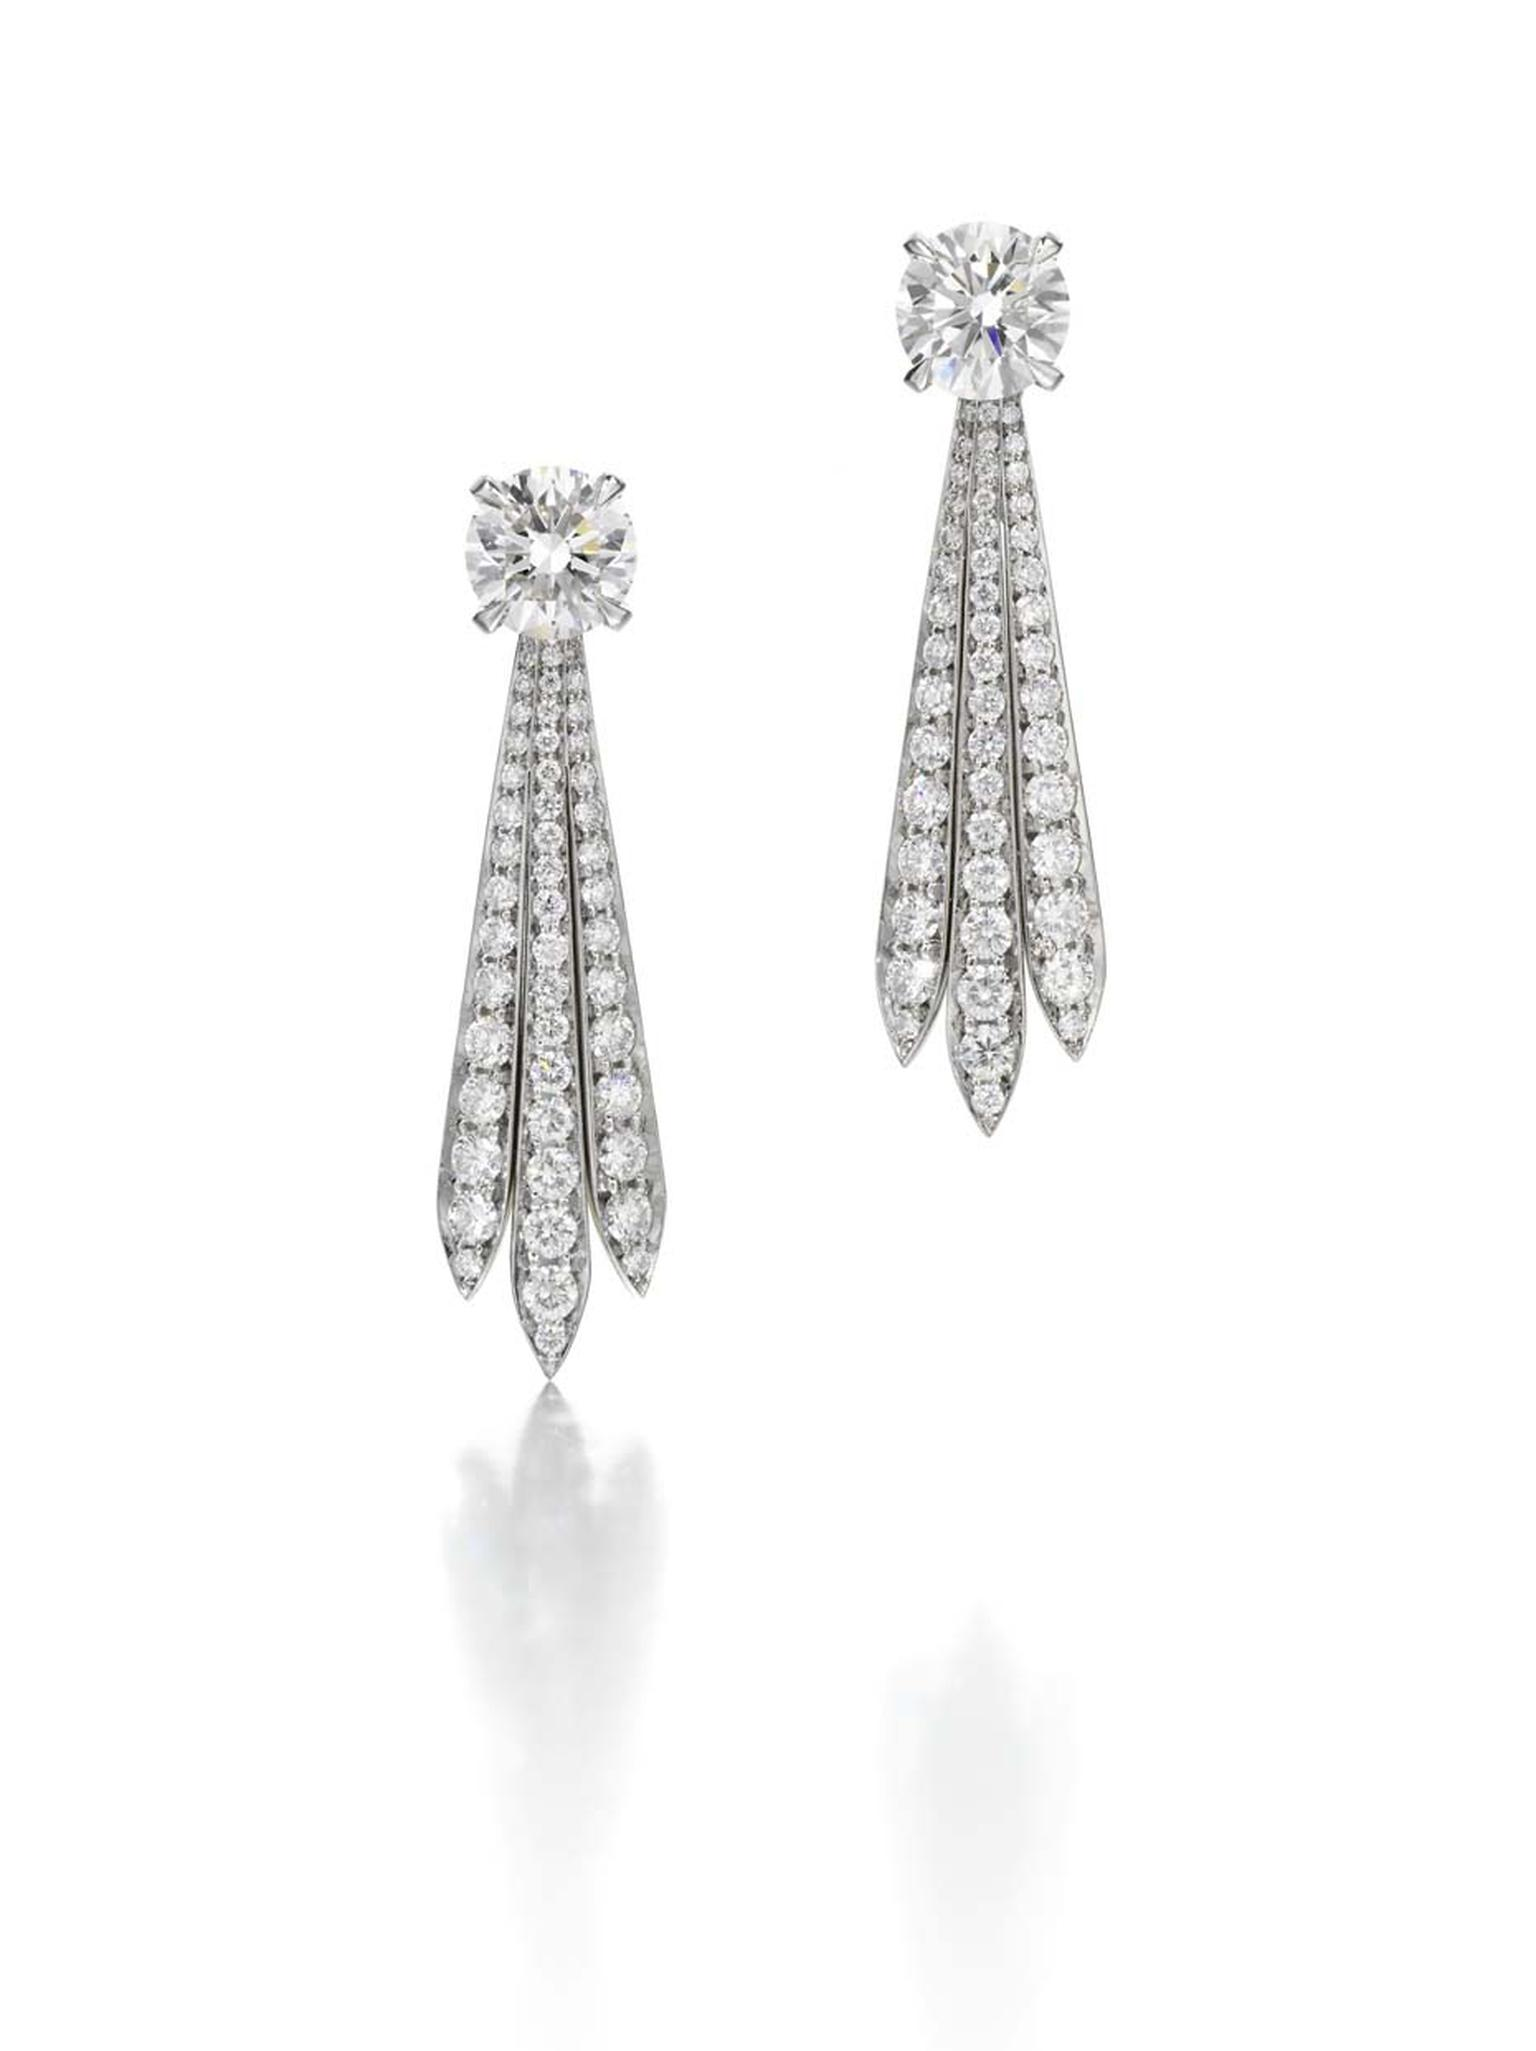 Jessica McCormack Mini Wheat Drop platinum earrings featuring 'wheat' diamonds elegantly hanging from two briliiant-cut diamonds